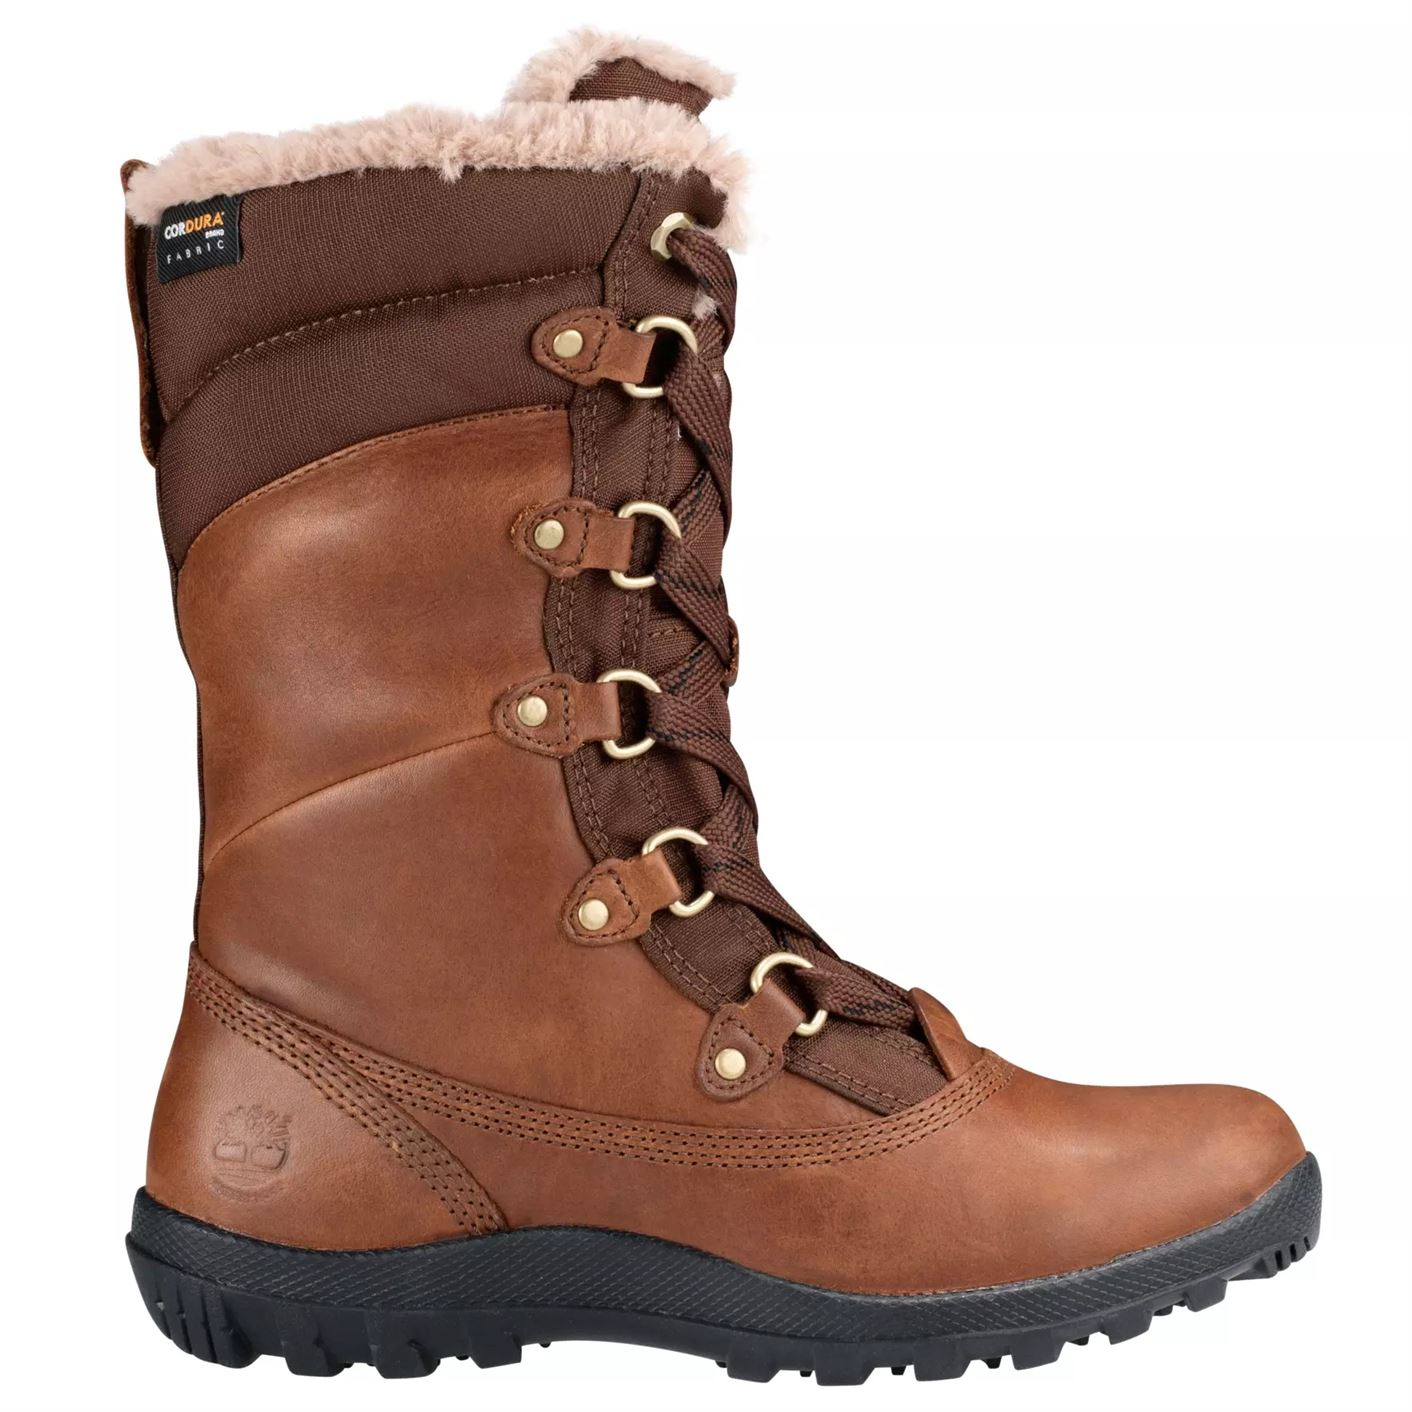 Mount Hope Mid Waterproof Boot - Women's